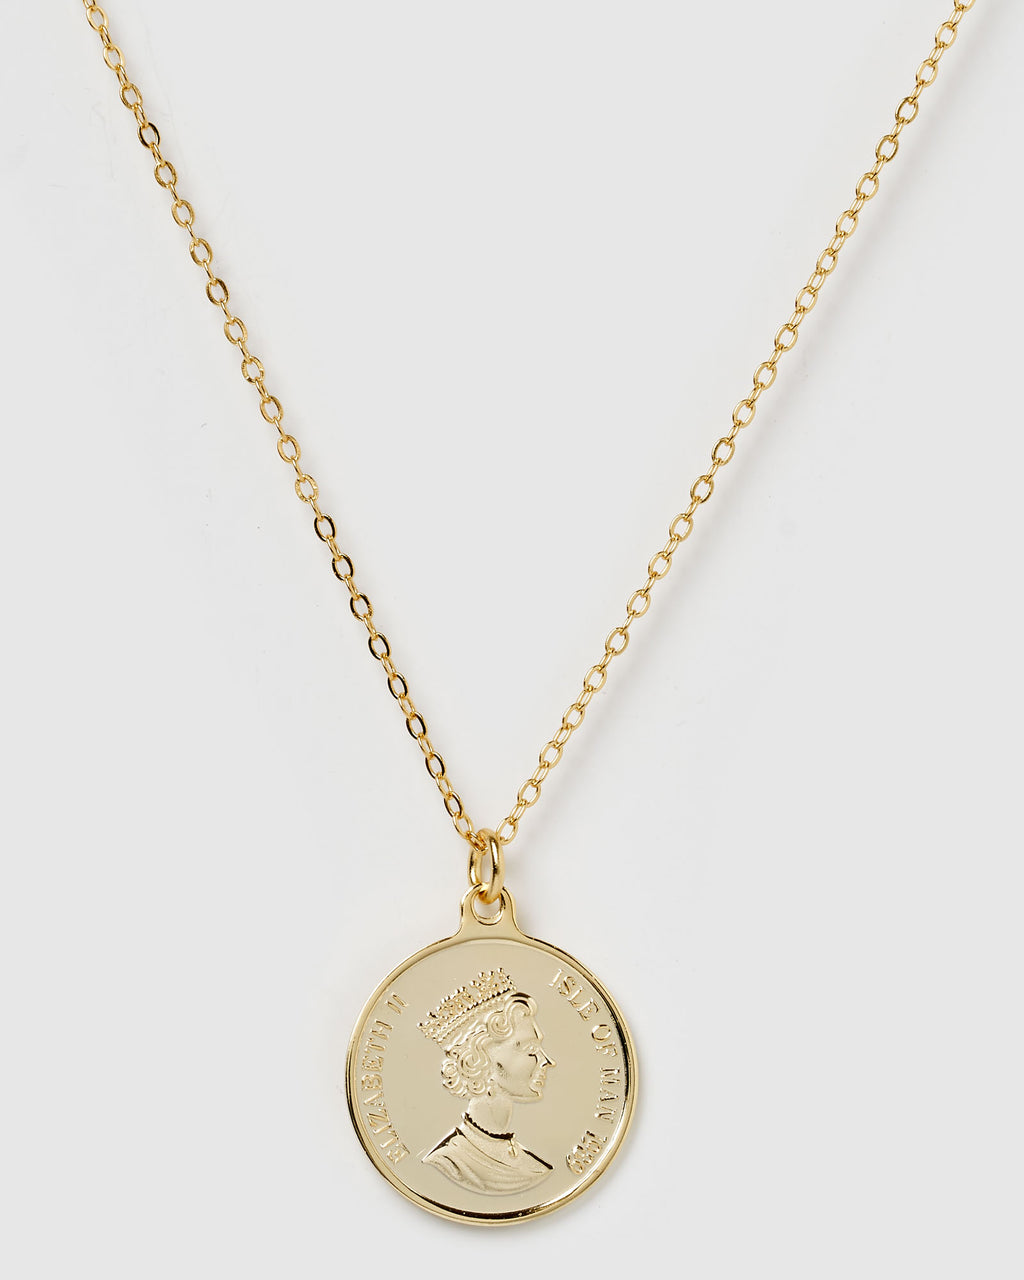 Izoa Riches Pendant Necklace Gold